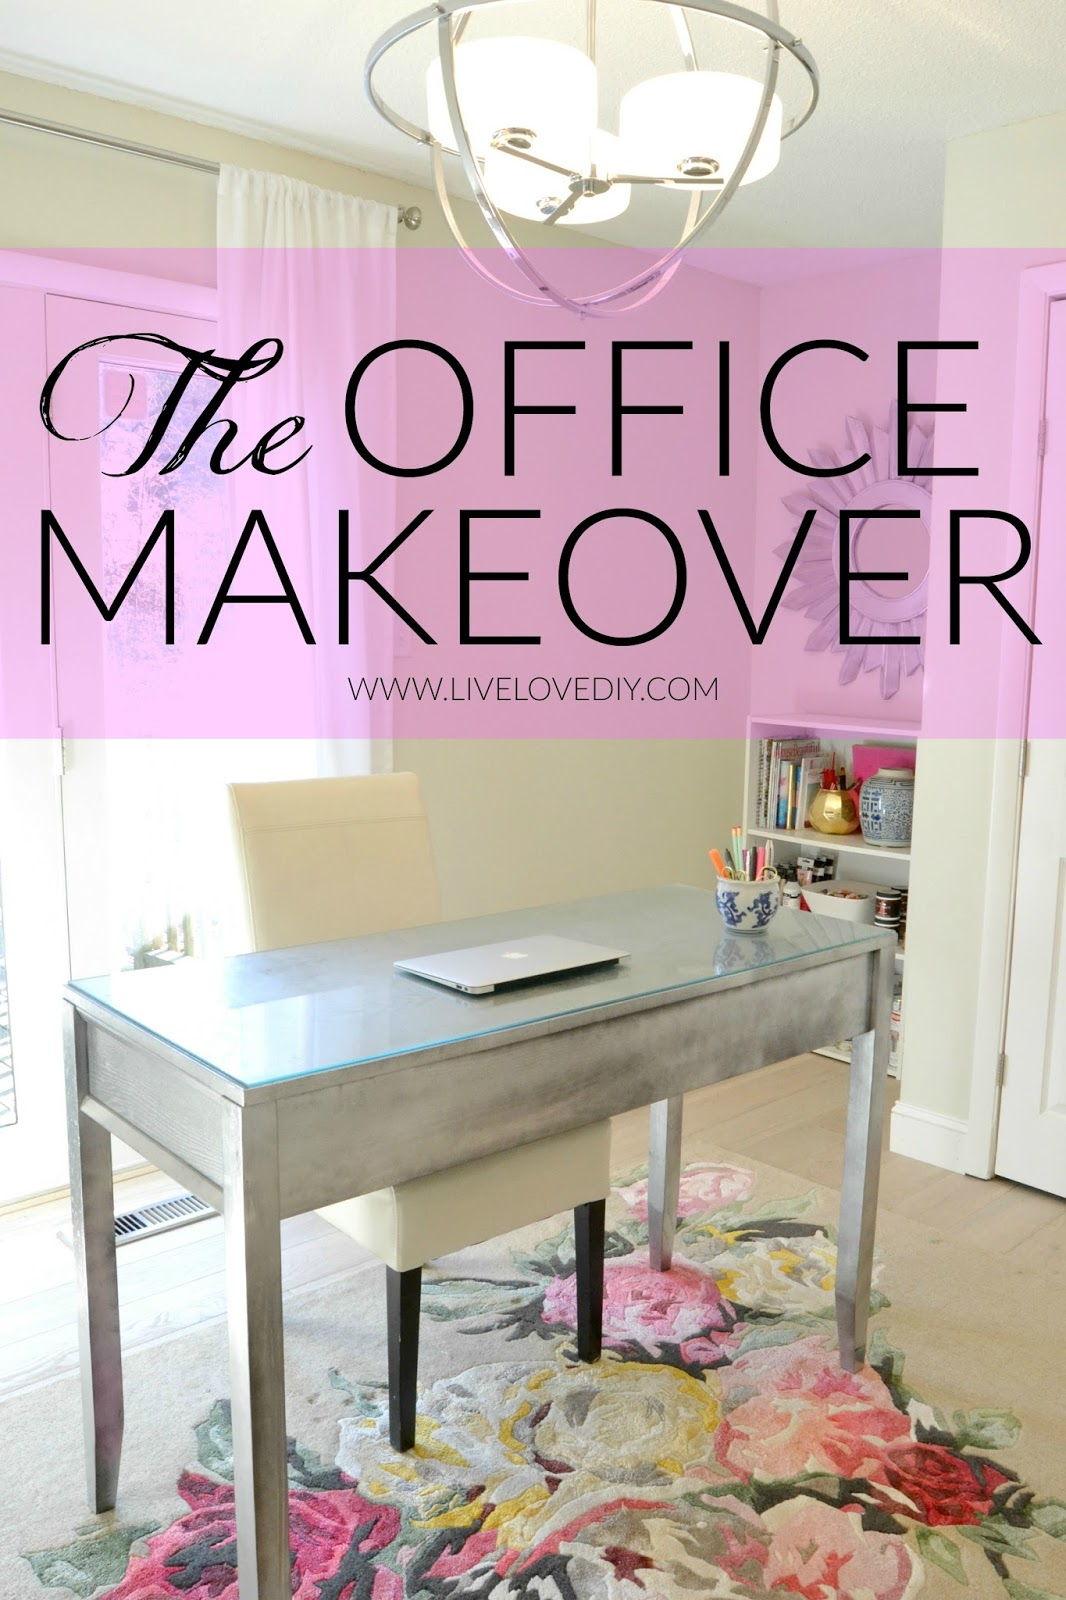 Livelovediy Home Office Decorating Ideas My Latest Office Makeover Rh  Livelovediy Com